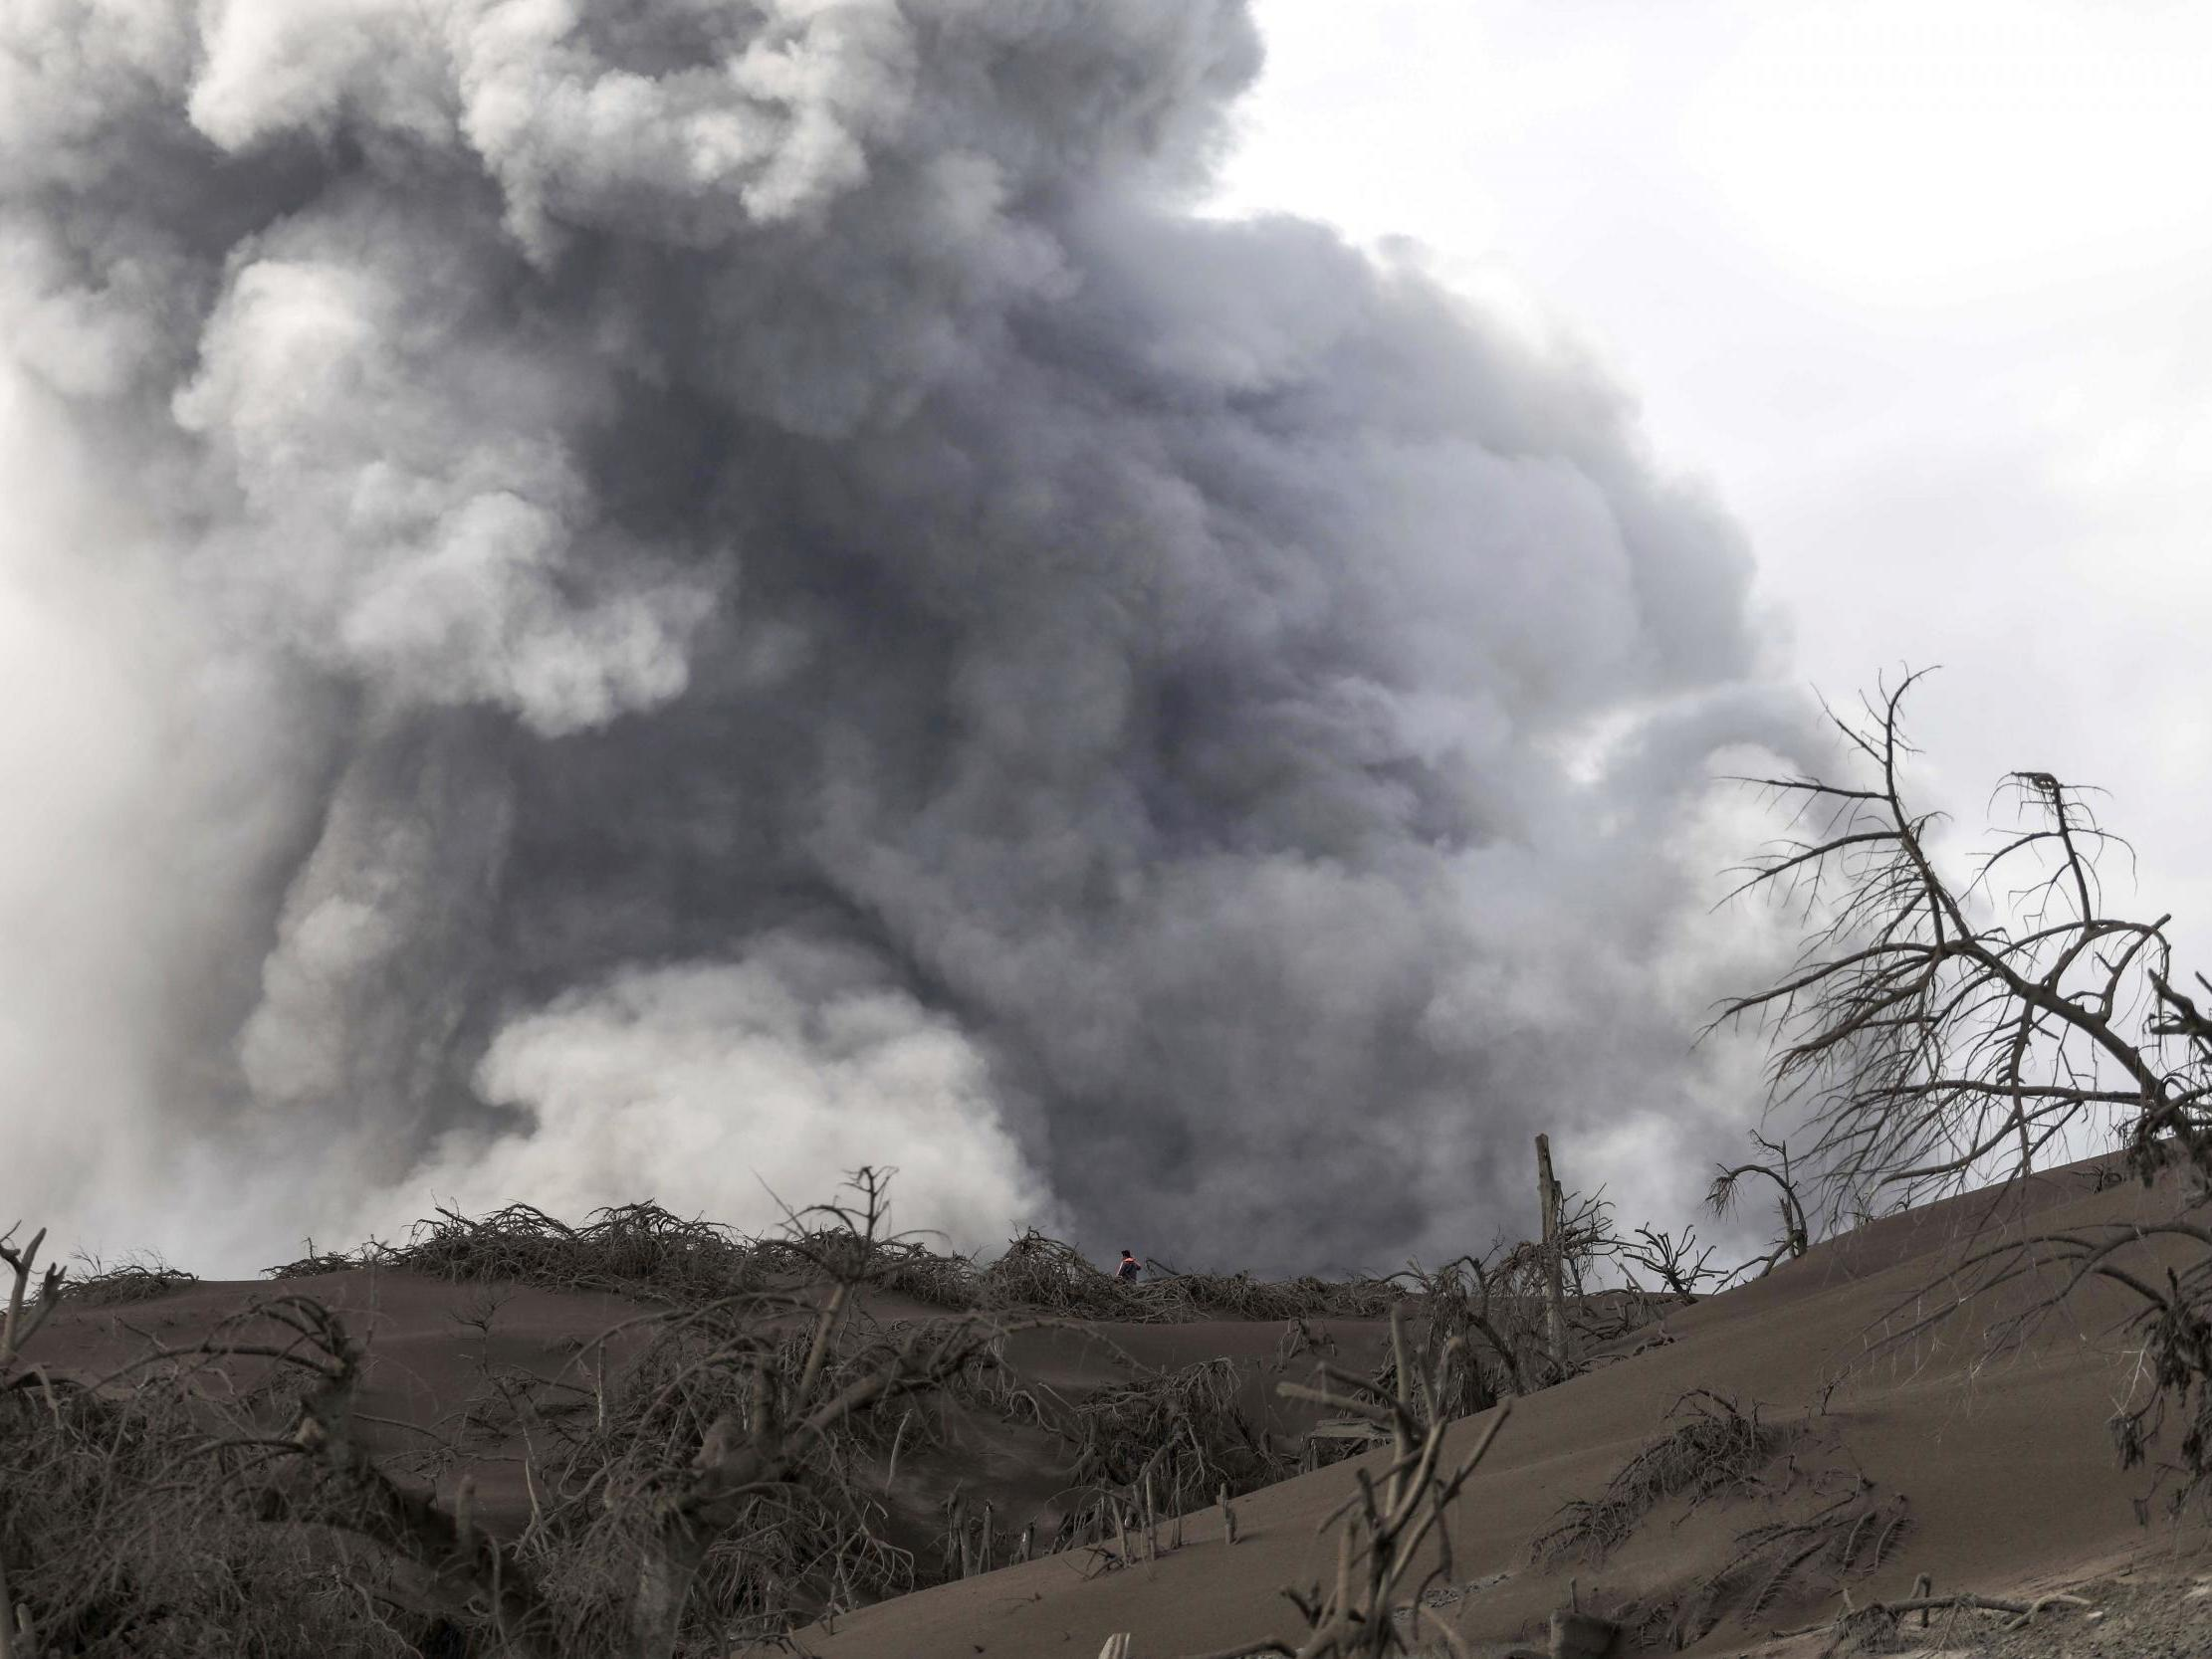 Taal volcano news – live: Tens of thousands flee danger zone amid fears of imminent 'explosive eruption' as towns cloaked in ash